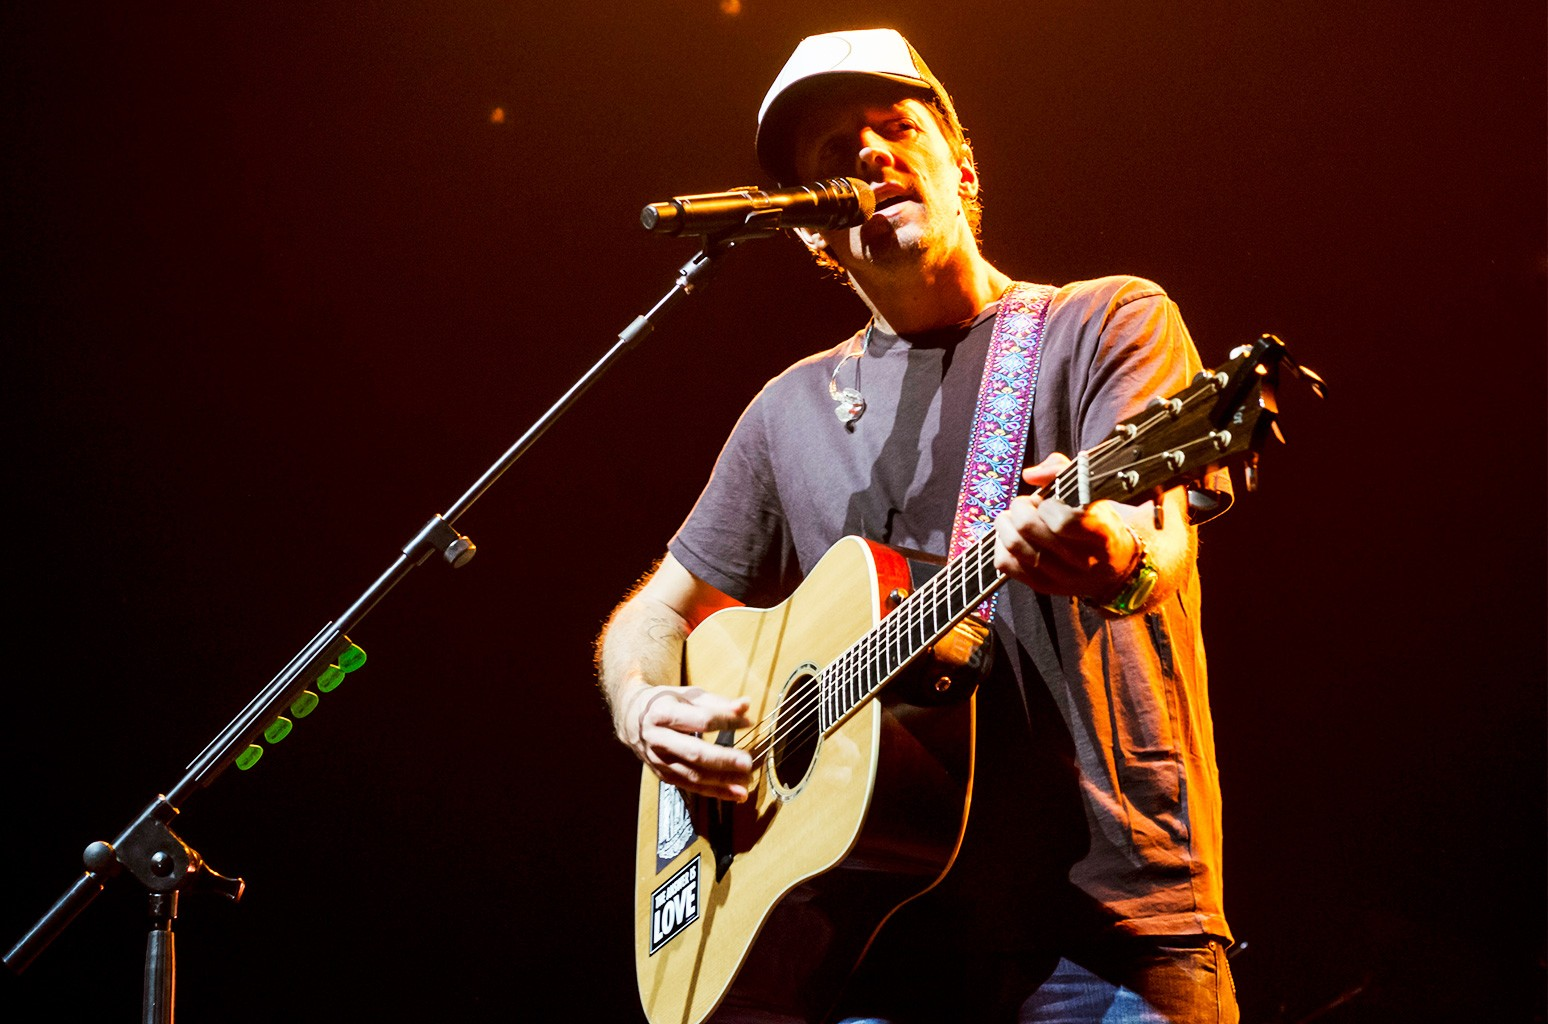 Jason Mraz performs during a show at Citibank Hall on Jan. 26, 2017 in Sao Paulo, Brazil.